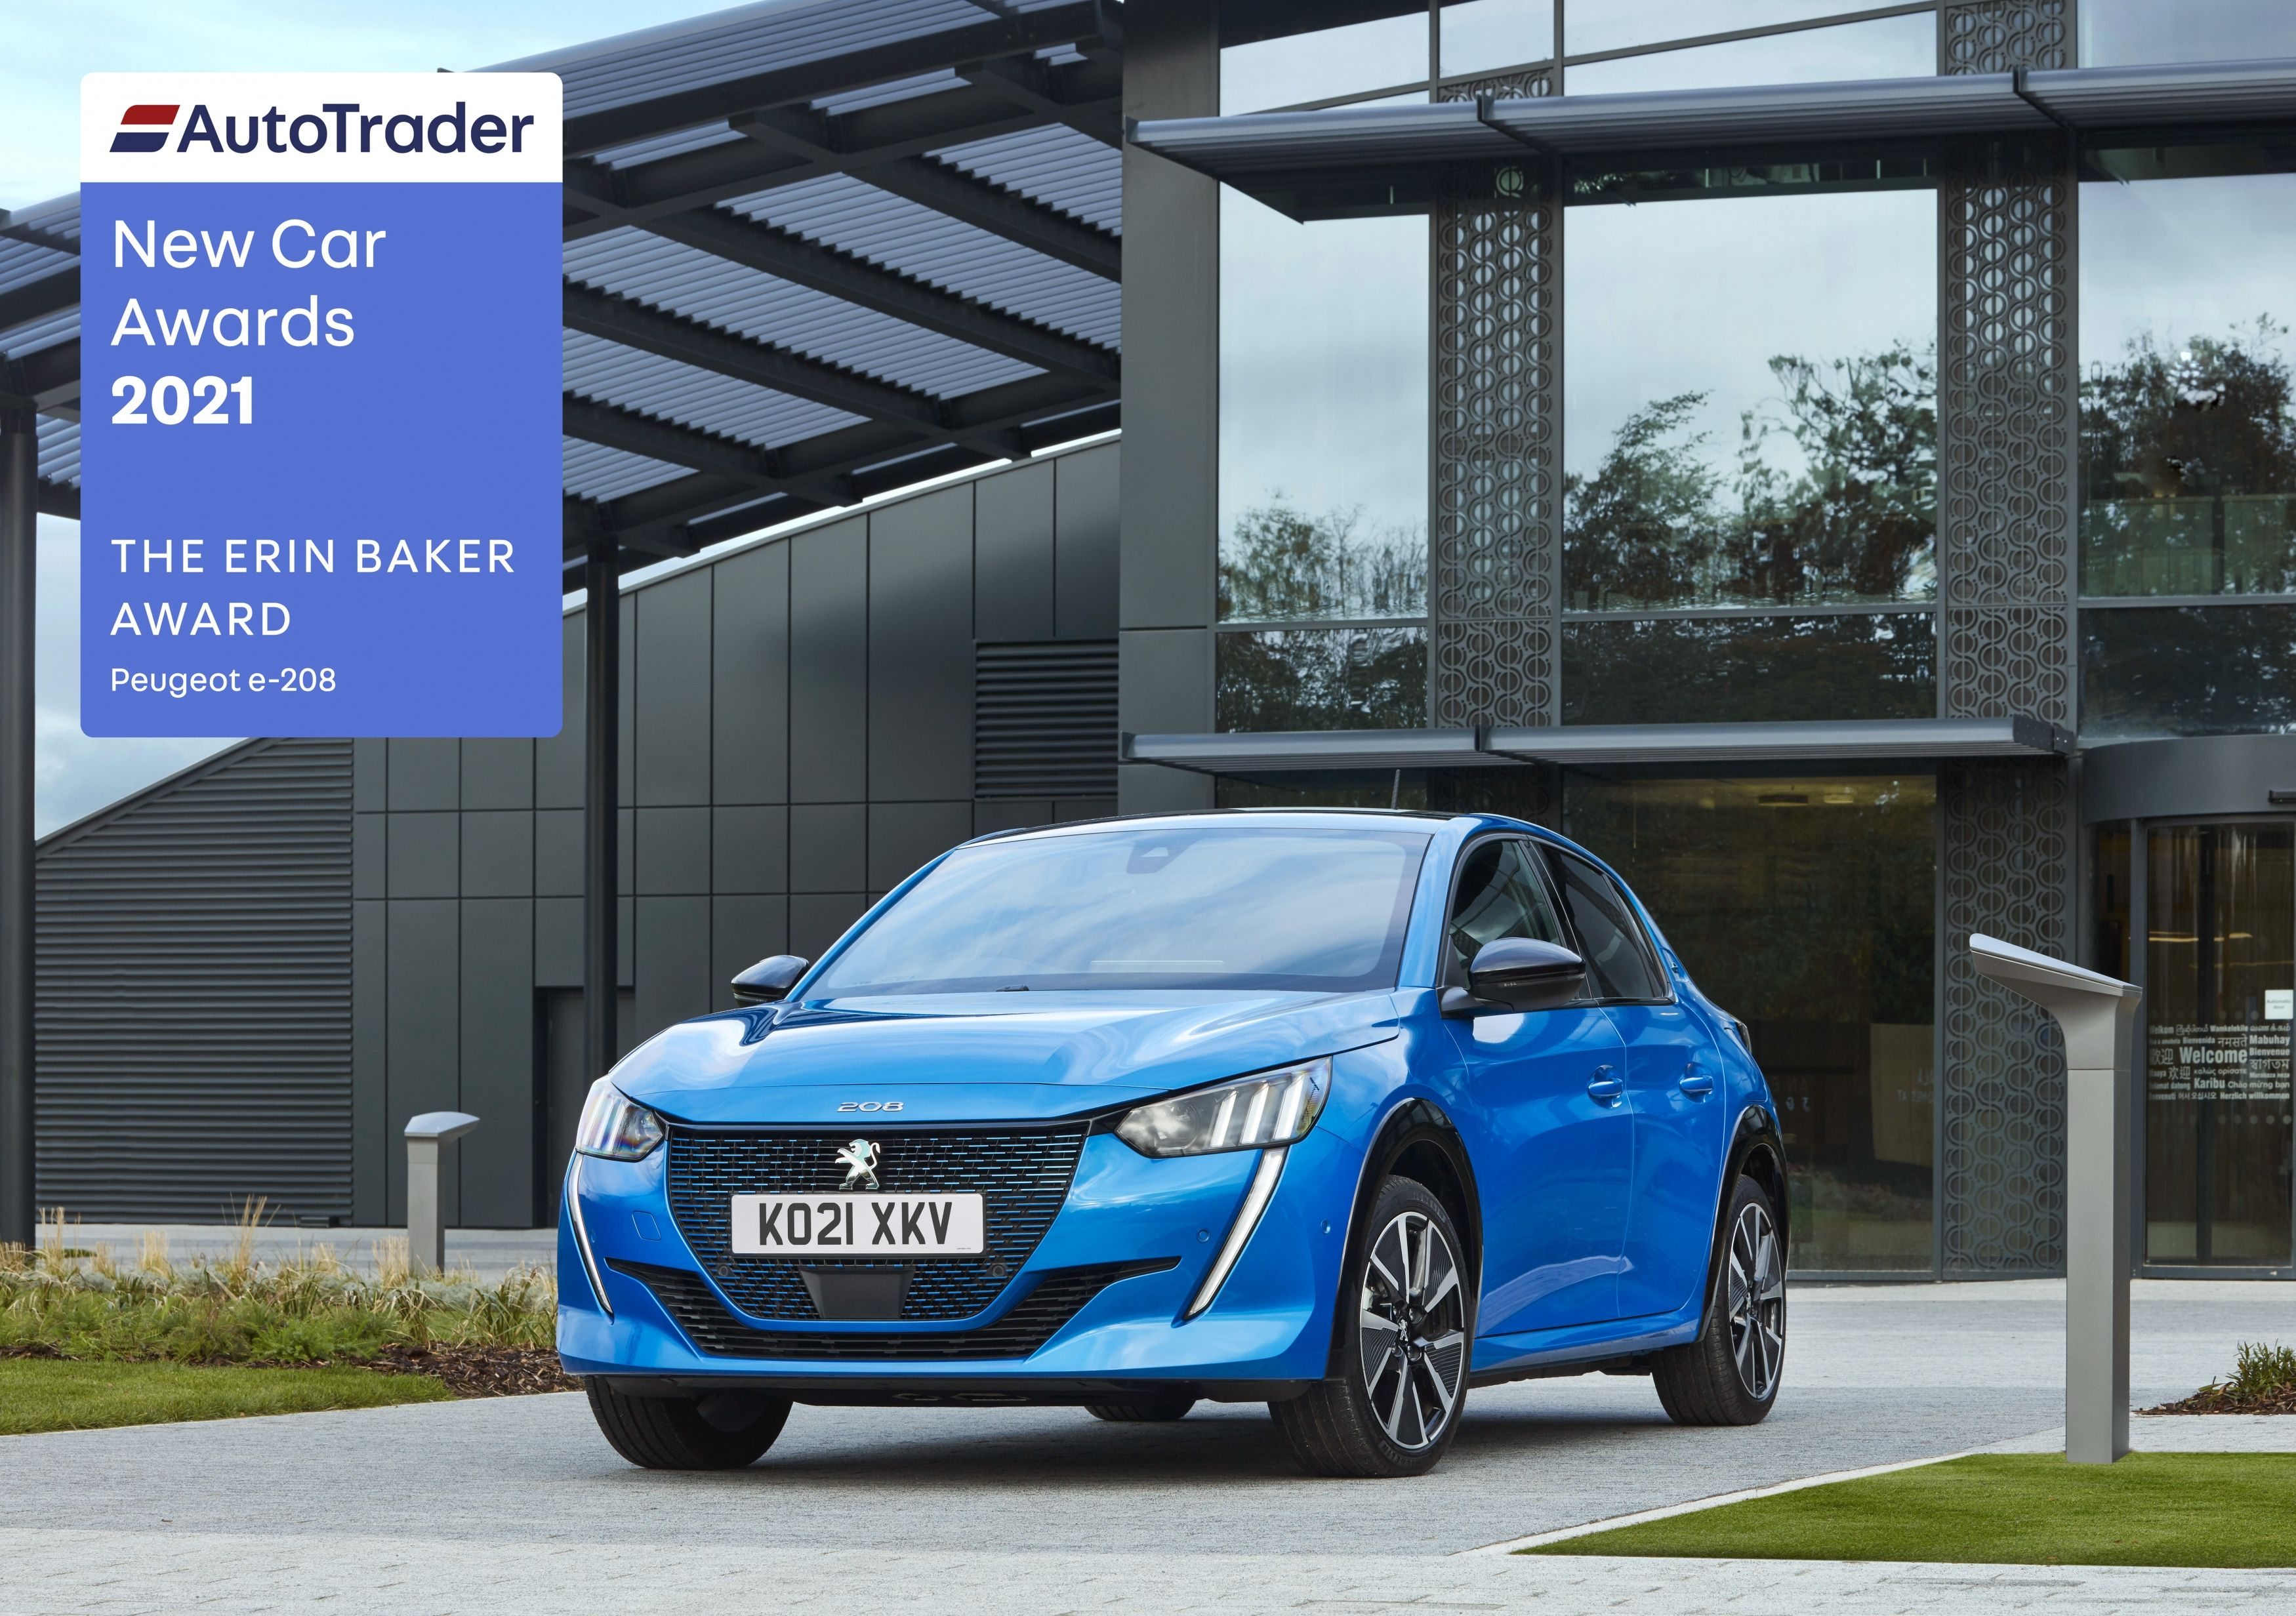 THE Peugeot e-208 and 2008 have won awards at the 2021 DieselCar and EcoCar Top 50 New Car Awards